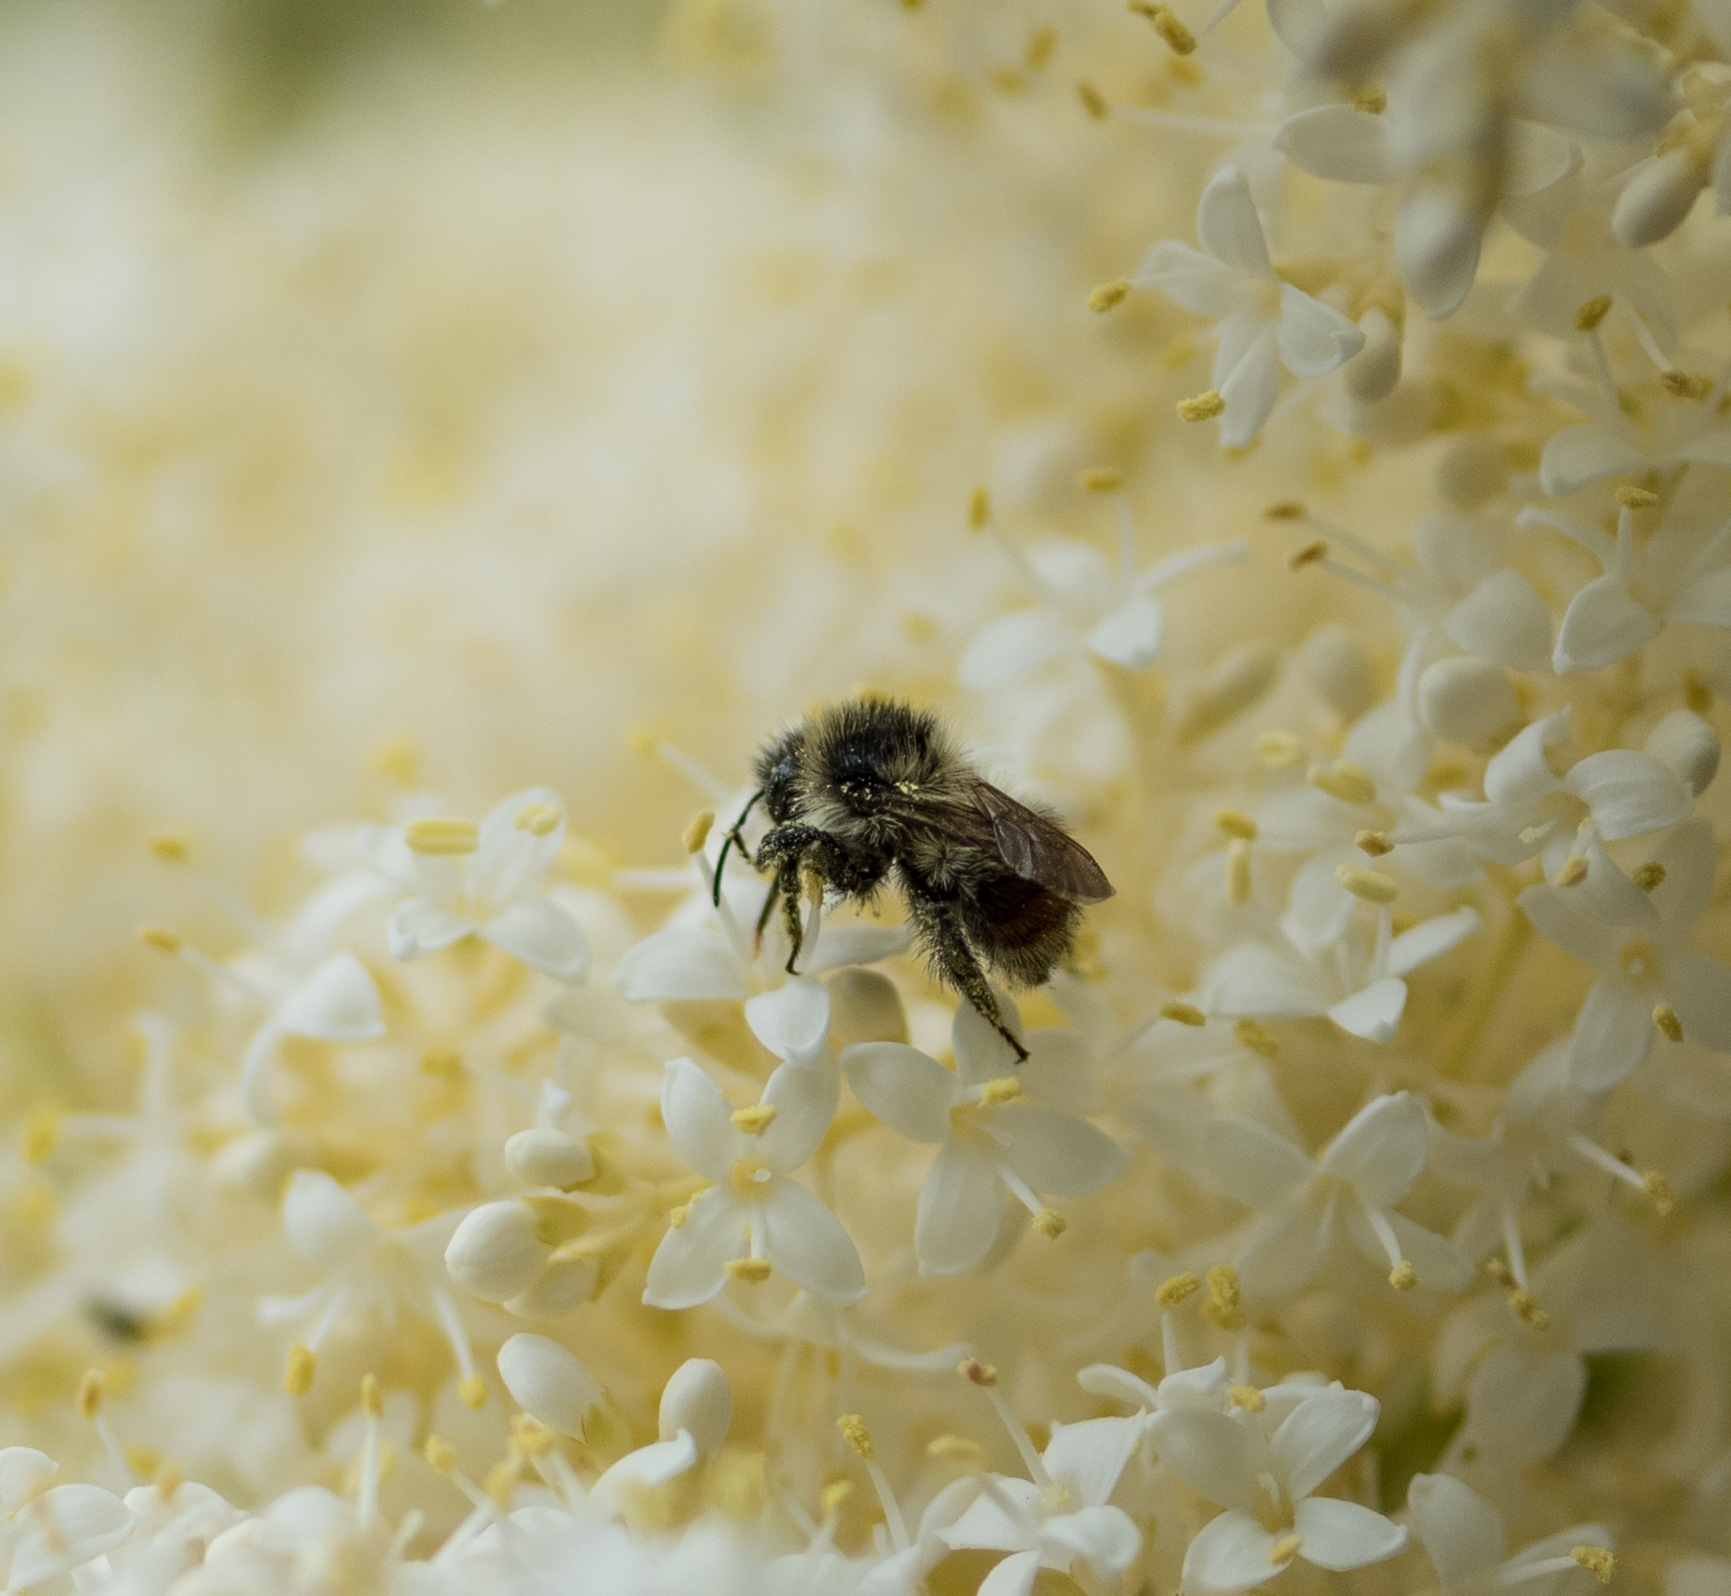 ALL THE BUZZ IS ABOUT ME by DrJohnHodgson